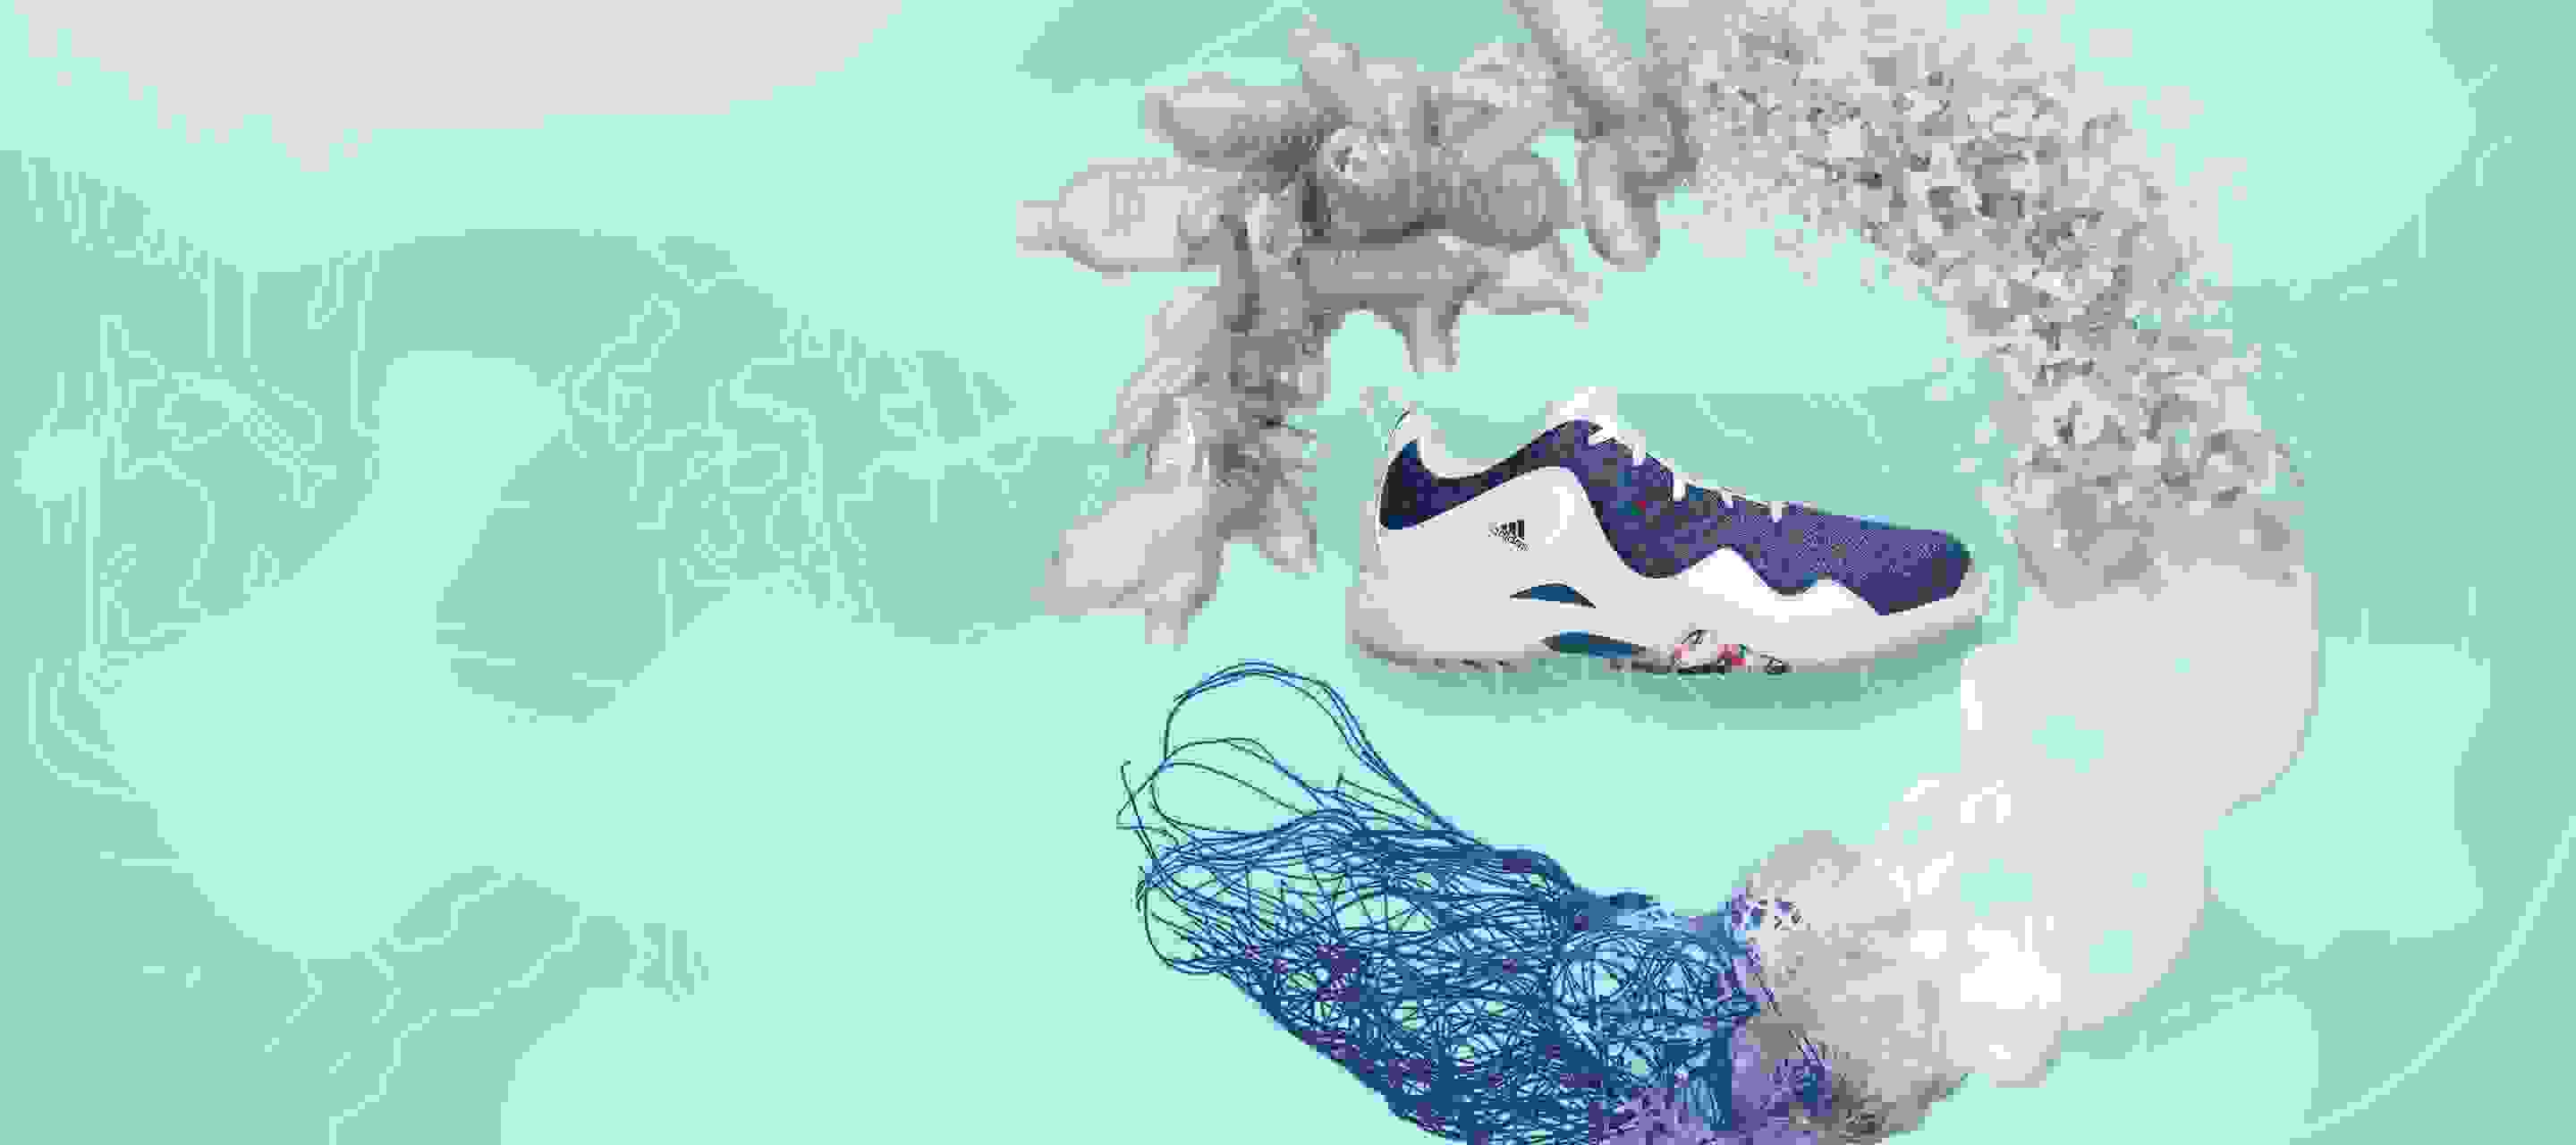 PRIMEBLUE golf shoe show against an aqua background surrounded by recycled plastic